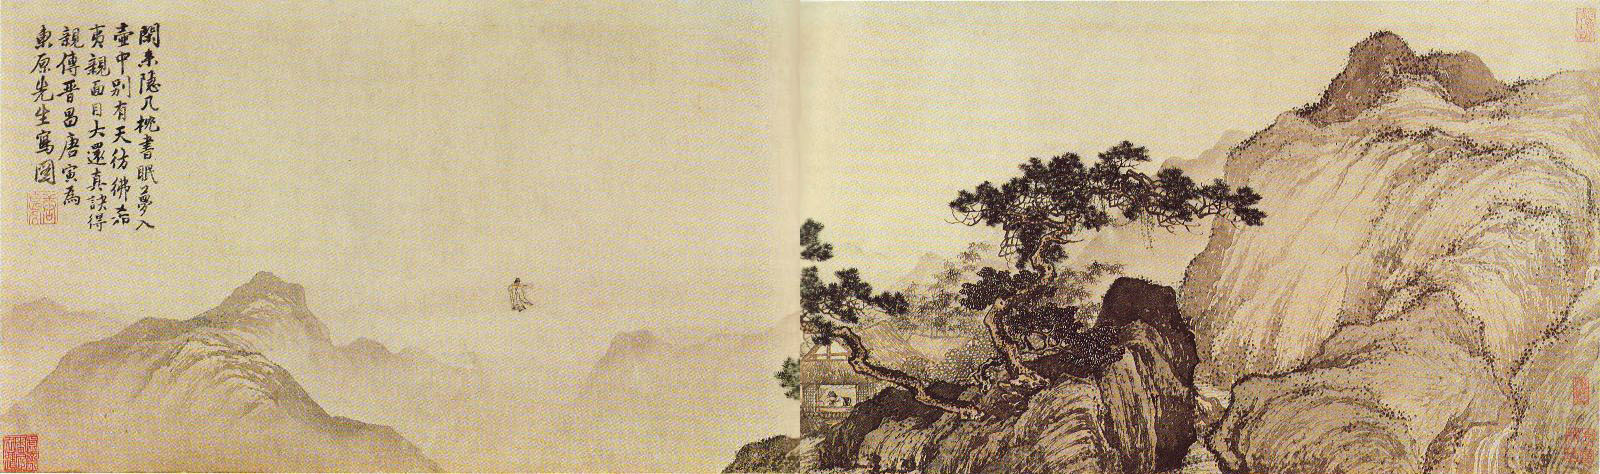 The Useless Tree: Taoism